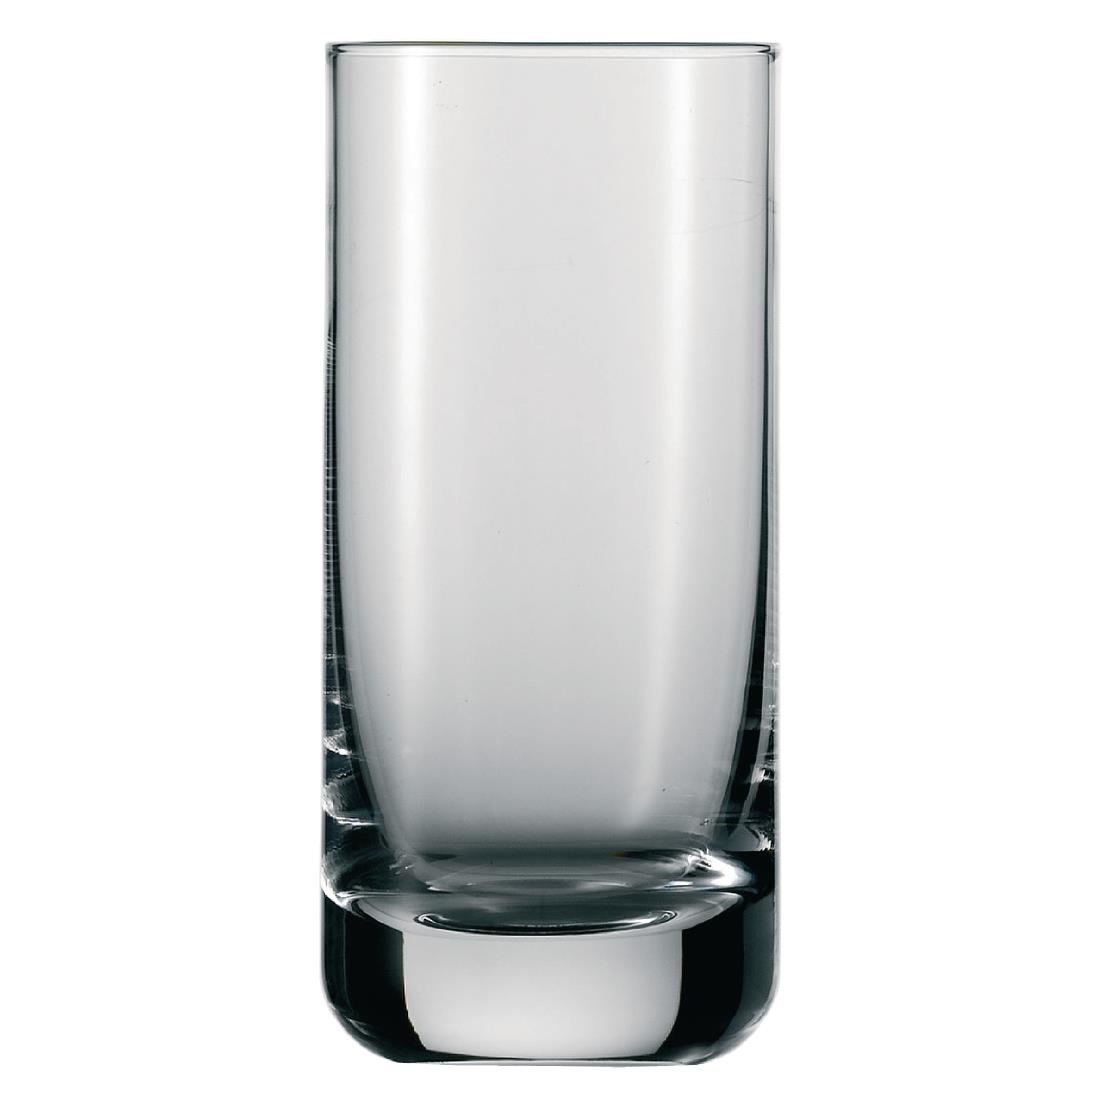 Schott Zwiesel Convention Crystal Hi Ball Glasses 345ml (Pack of 6) Pack of 6 Image